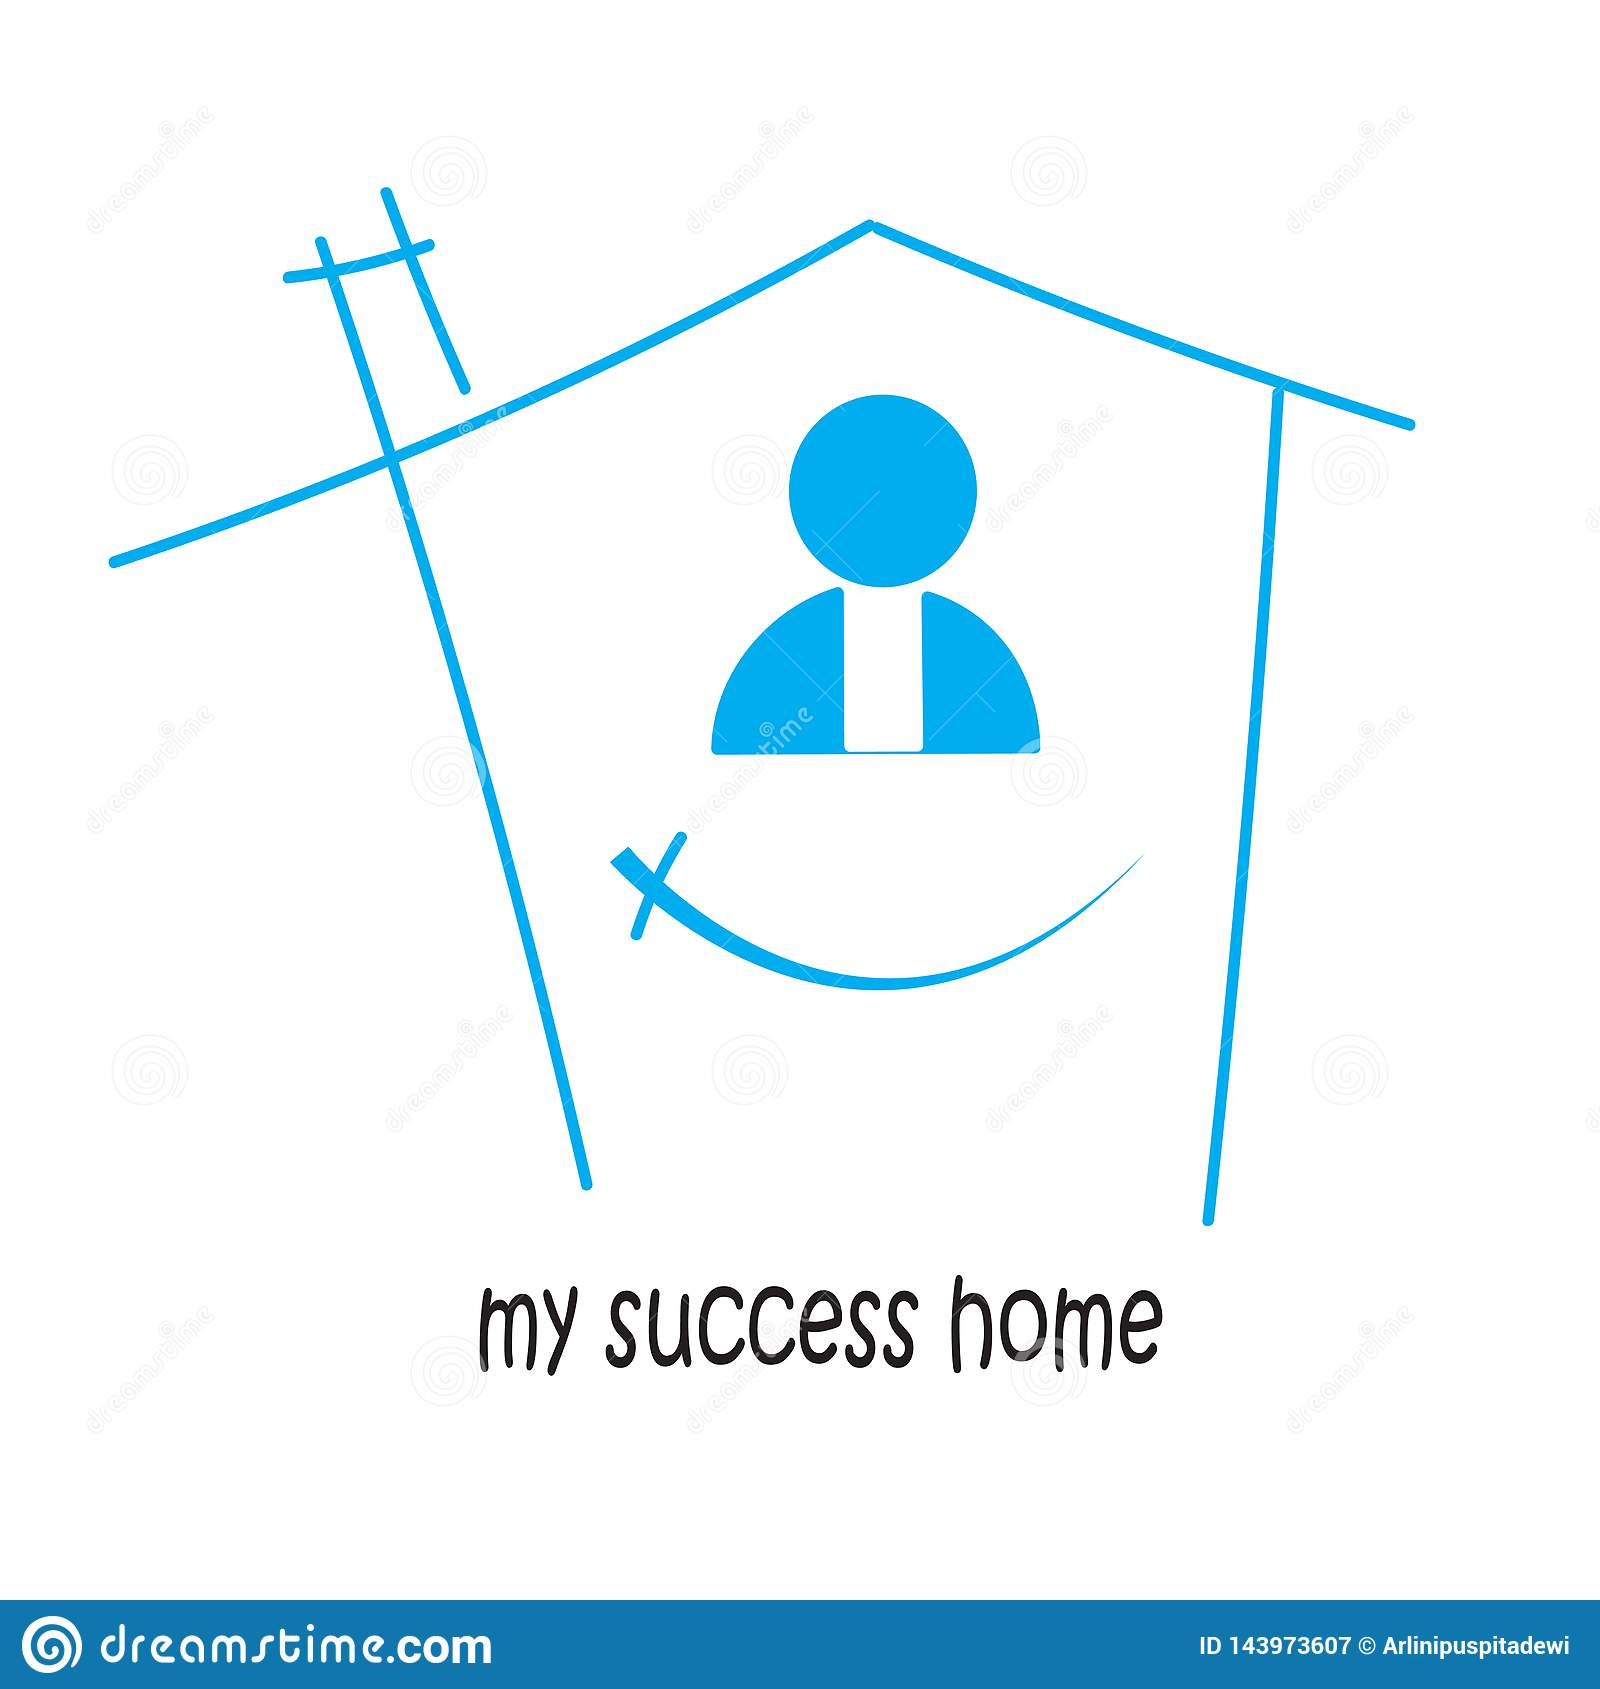 home of my success and victory. in